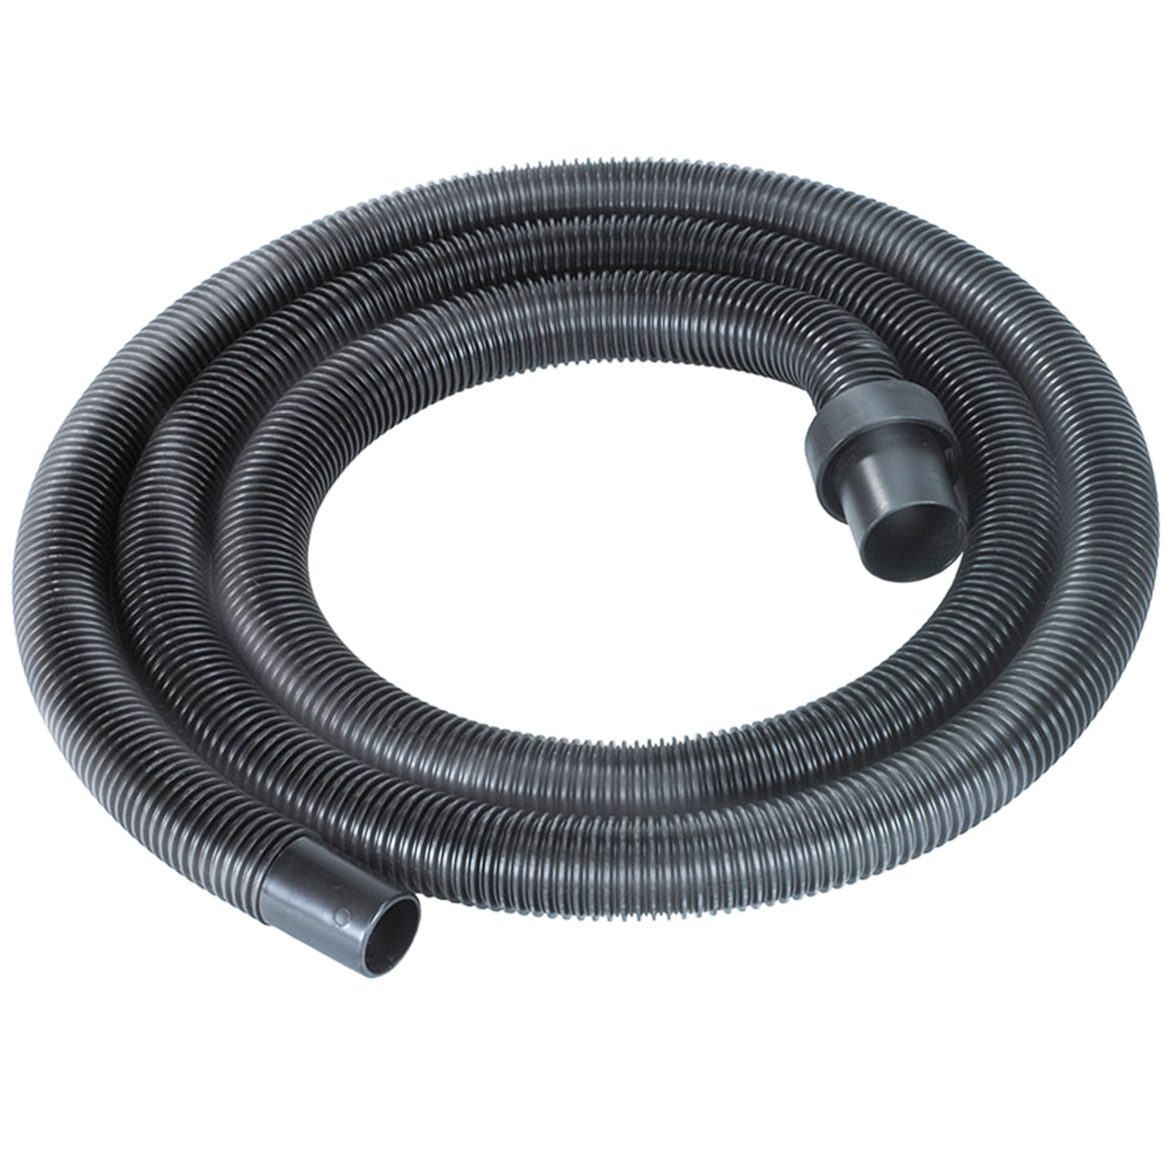 Shop-Vac 9062500 1.5 in. x 12 ft. Hose